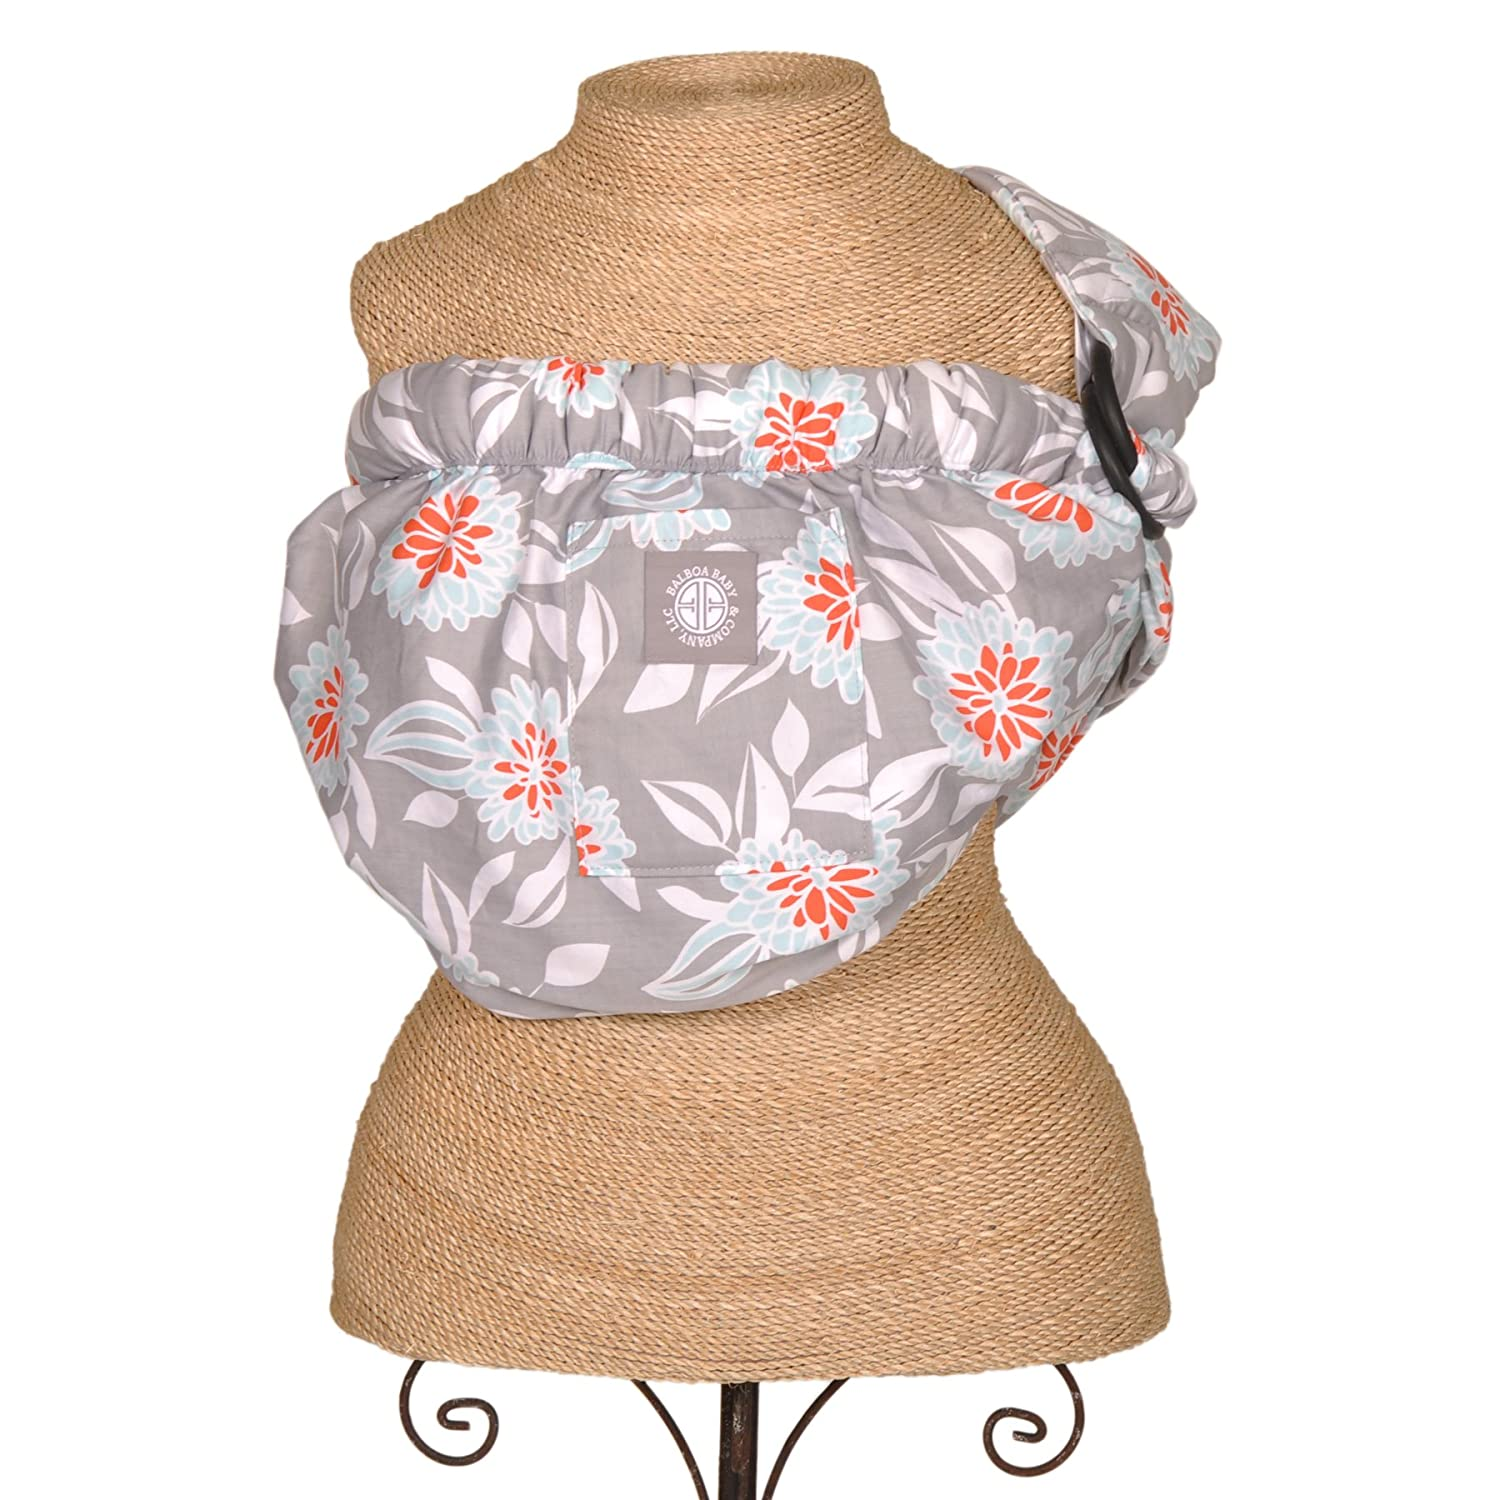 Balboa Baby Adjustable Sling Dahlia, Grey 70231